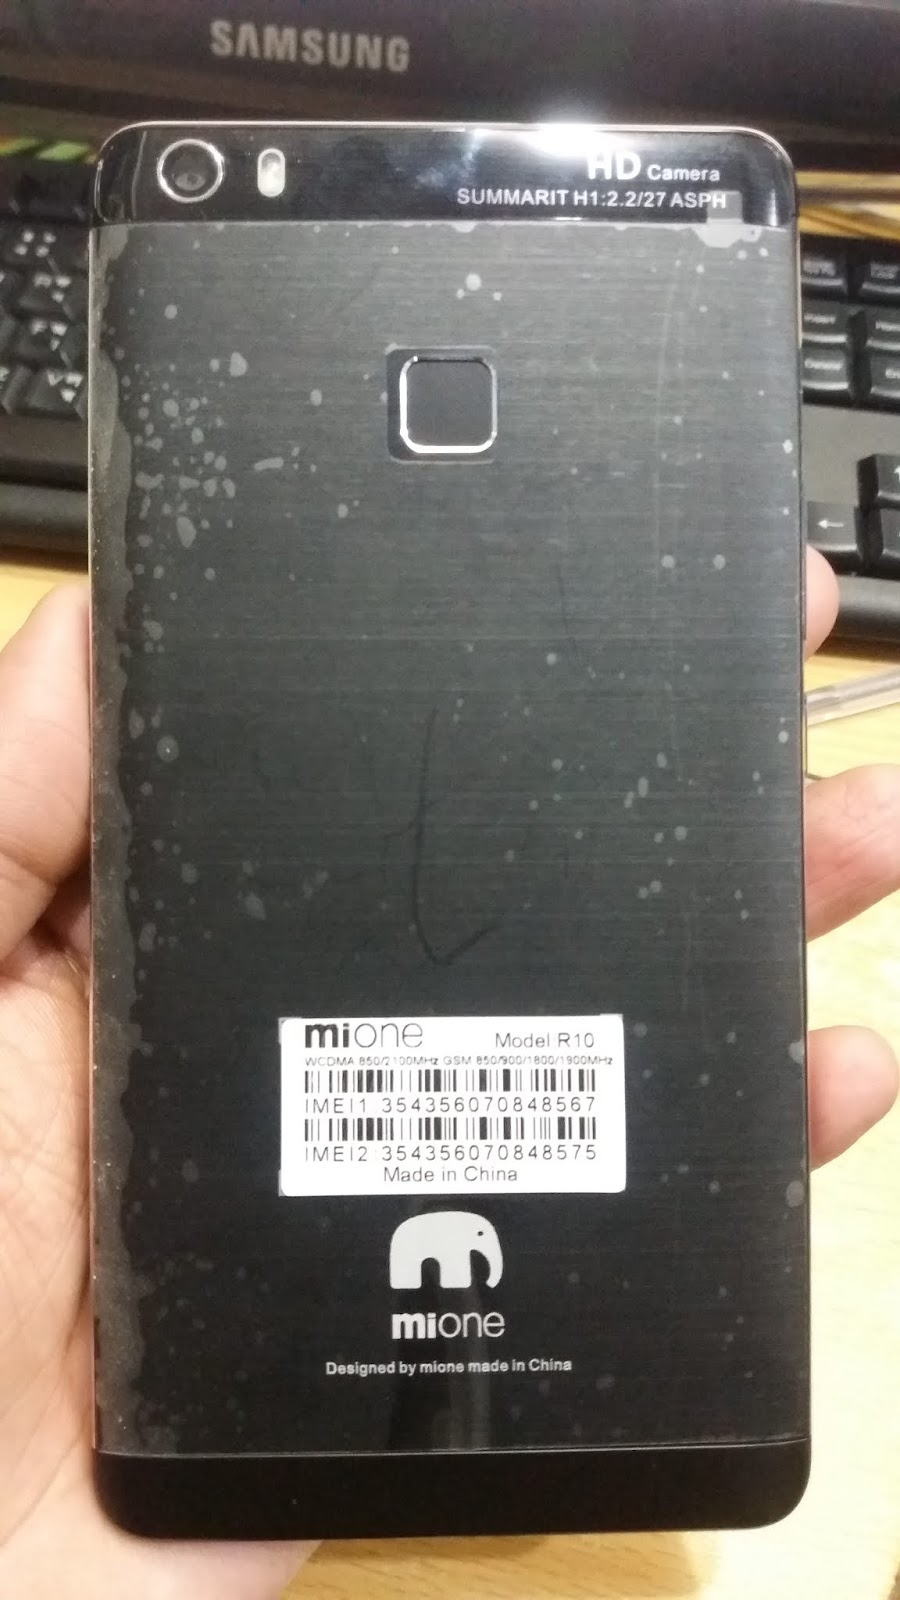 MiOne R10 Flash File MT6580 Android 5 1 Firmware 1000% Ok Tested